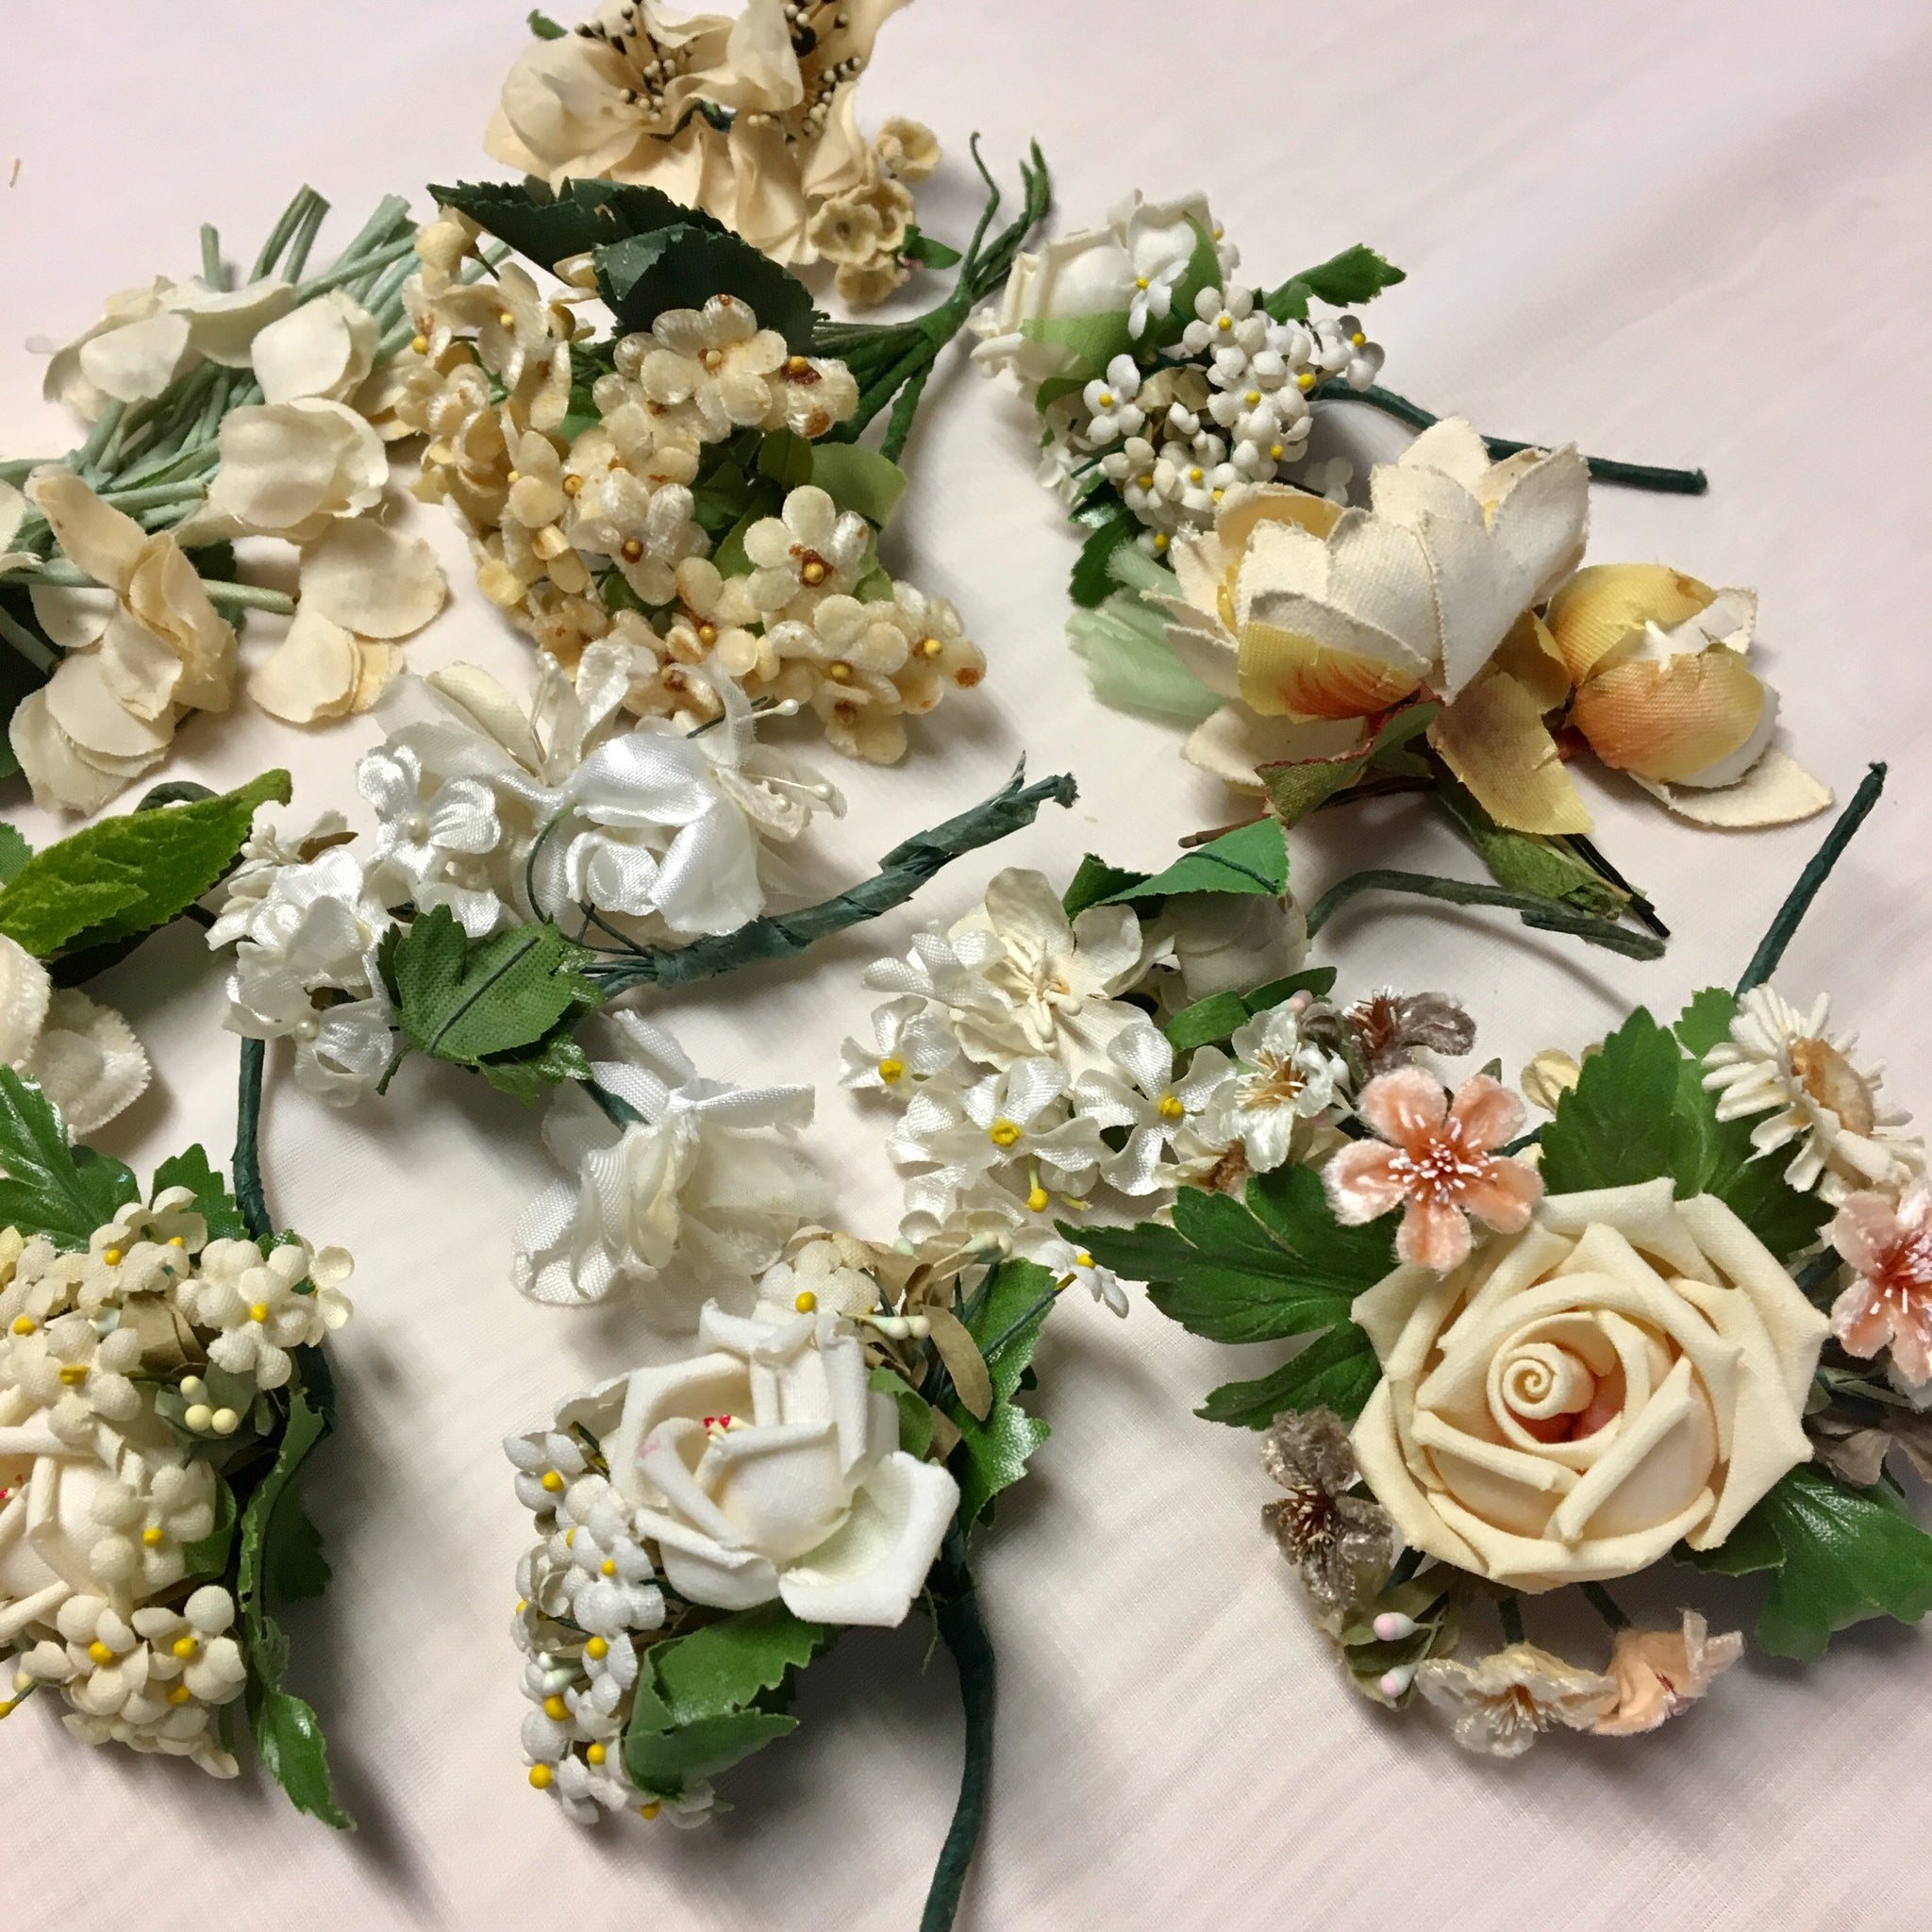 Vintage Wedding Flowers and Corsages from 1920's to 1960's Millinery Hat Flowers in Whites Creams Lot E